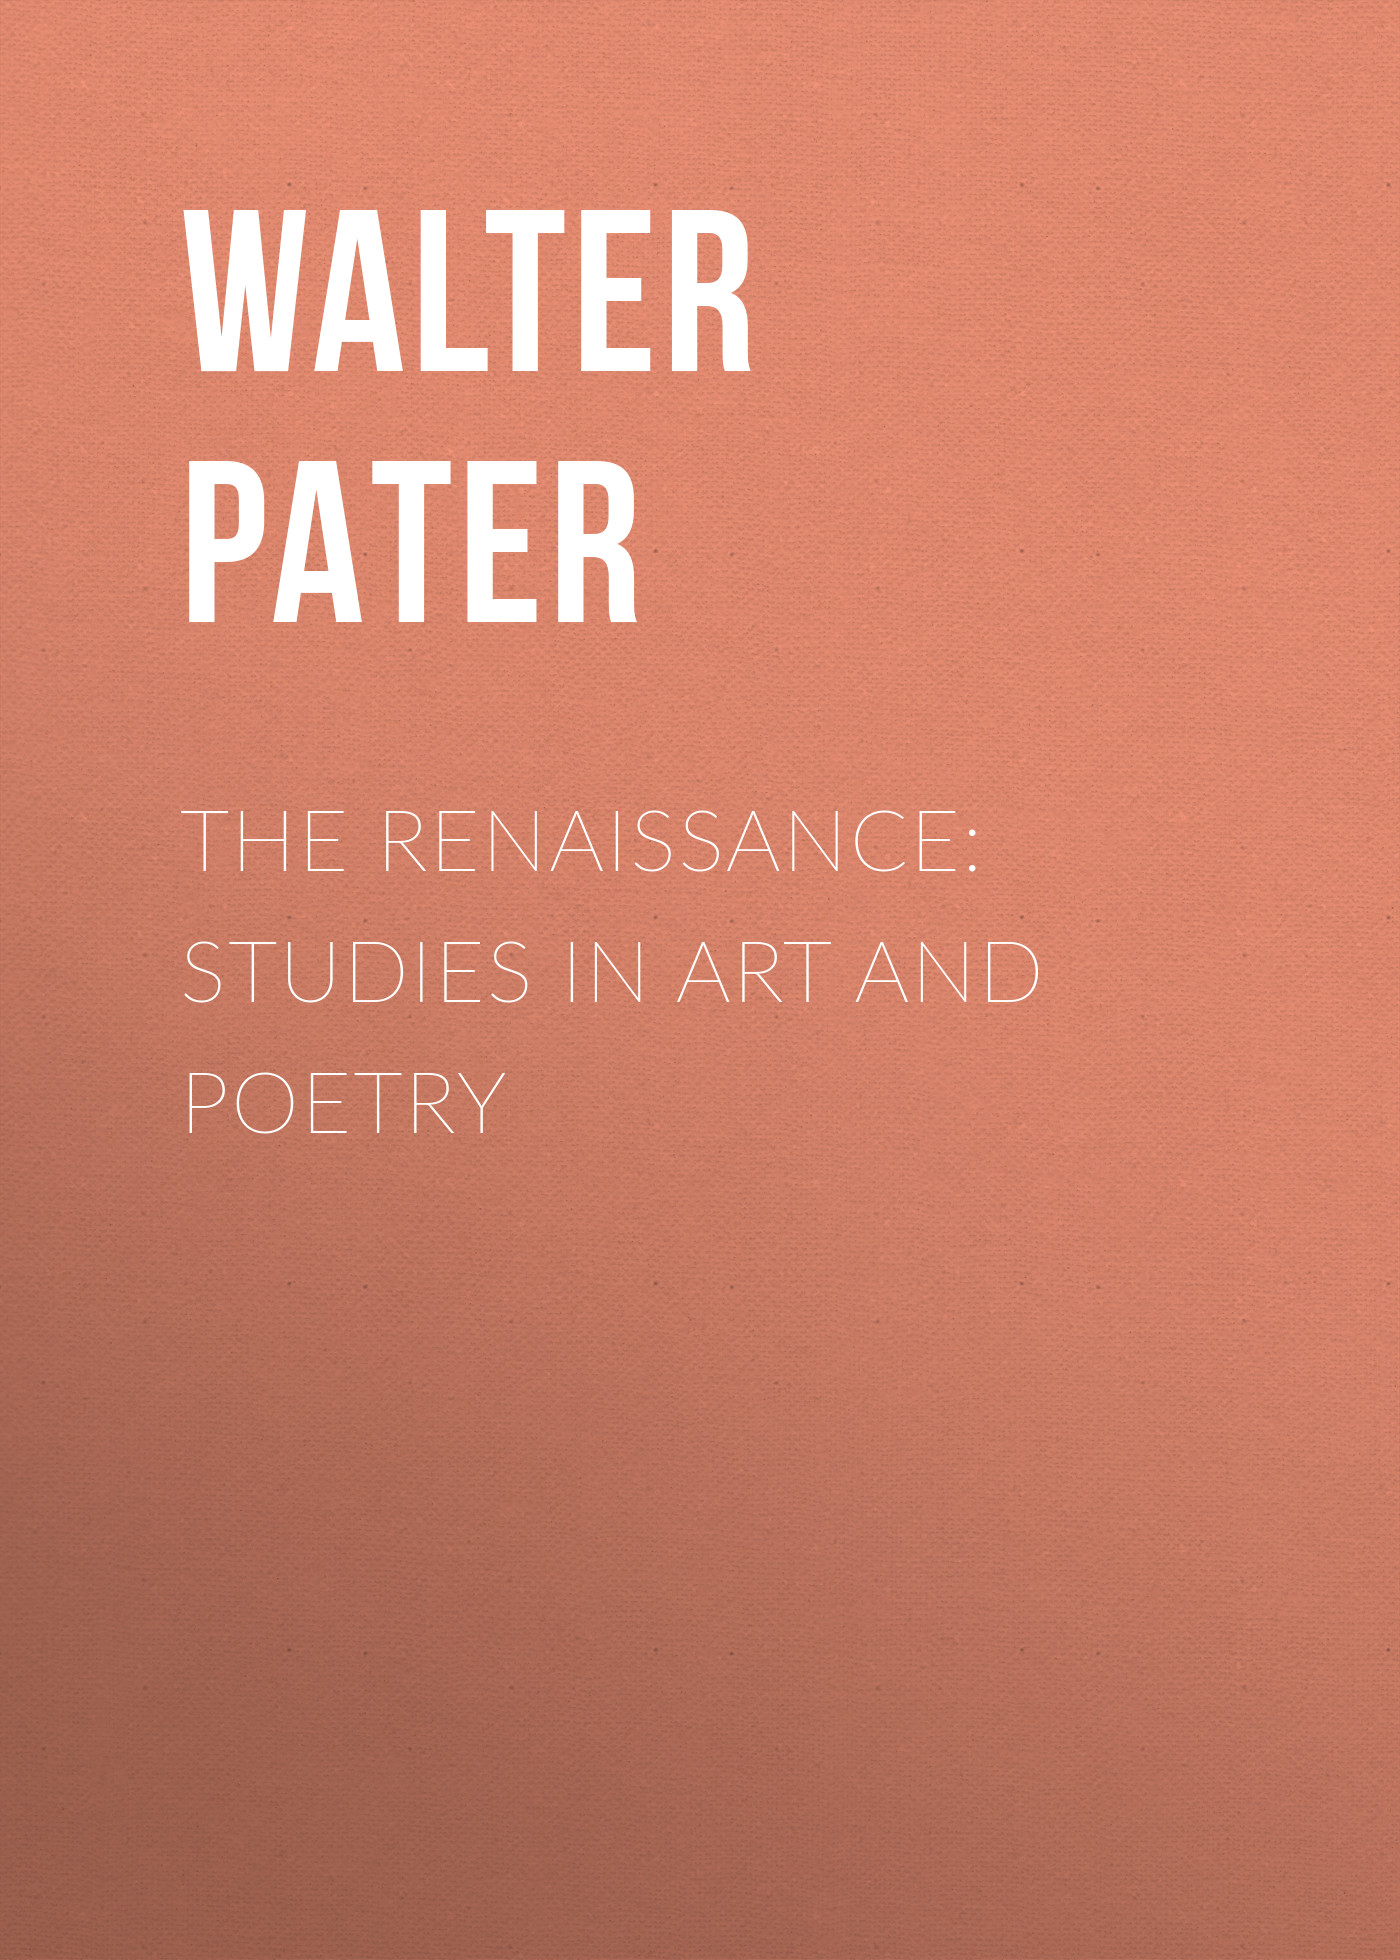 Walter Pater The Renaissance: Studies in Art and Poetry eye and ear in wordsworth s poetry